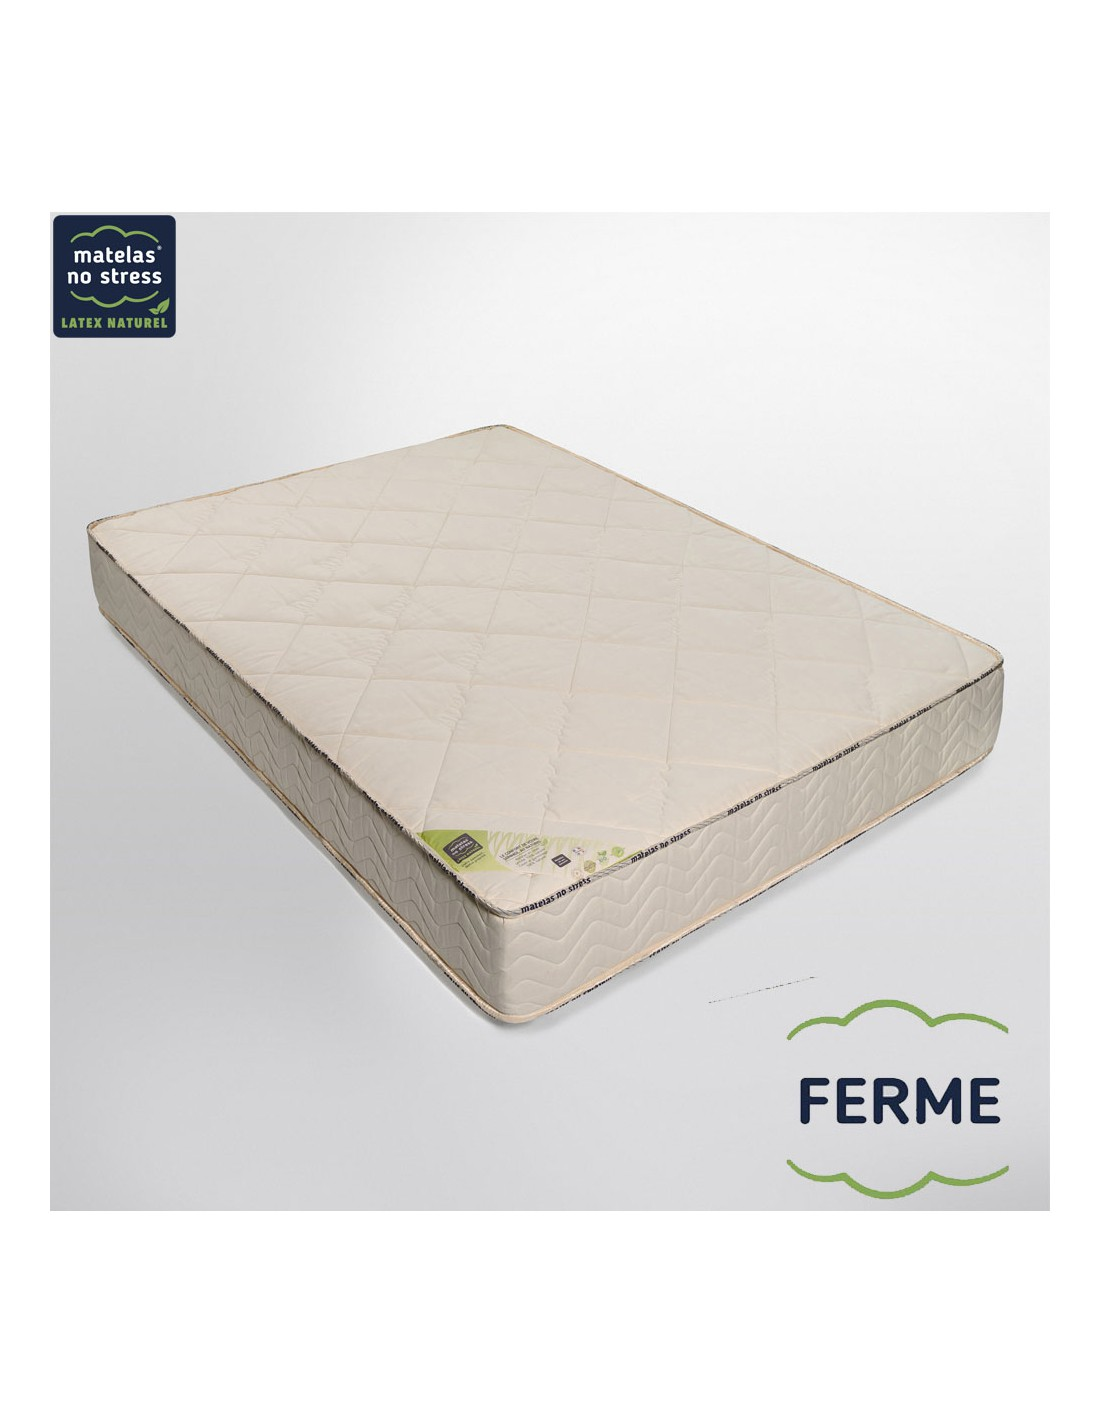 matelas latex bio naturel 140x200 prestige ferme 24 cm. Black Bedroom Furniture Sets. Home Design Ideas